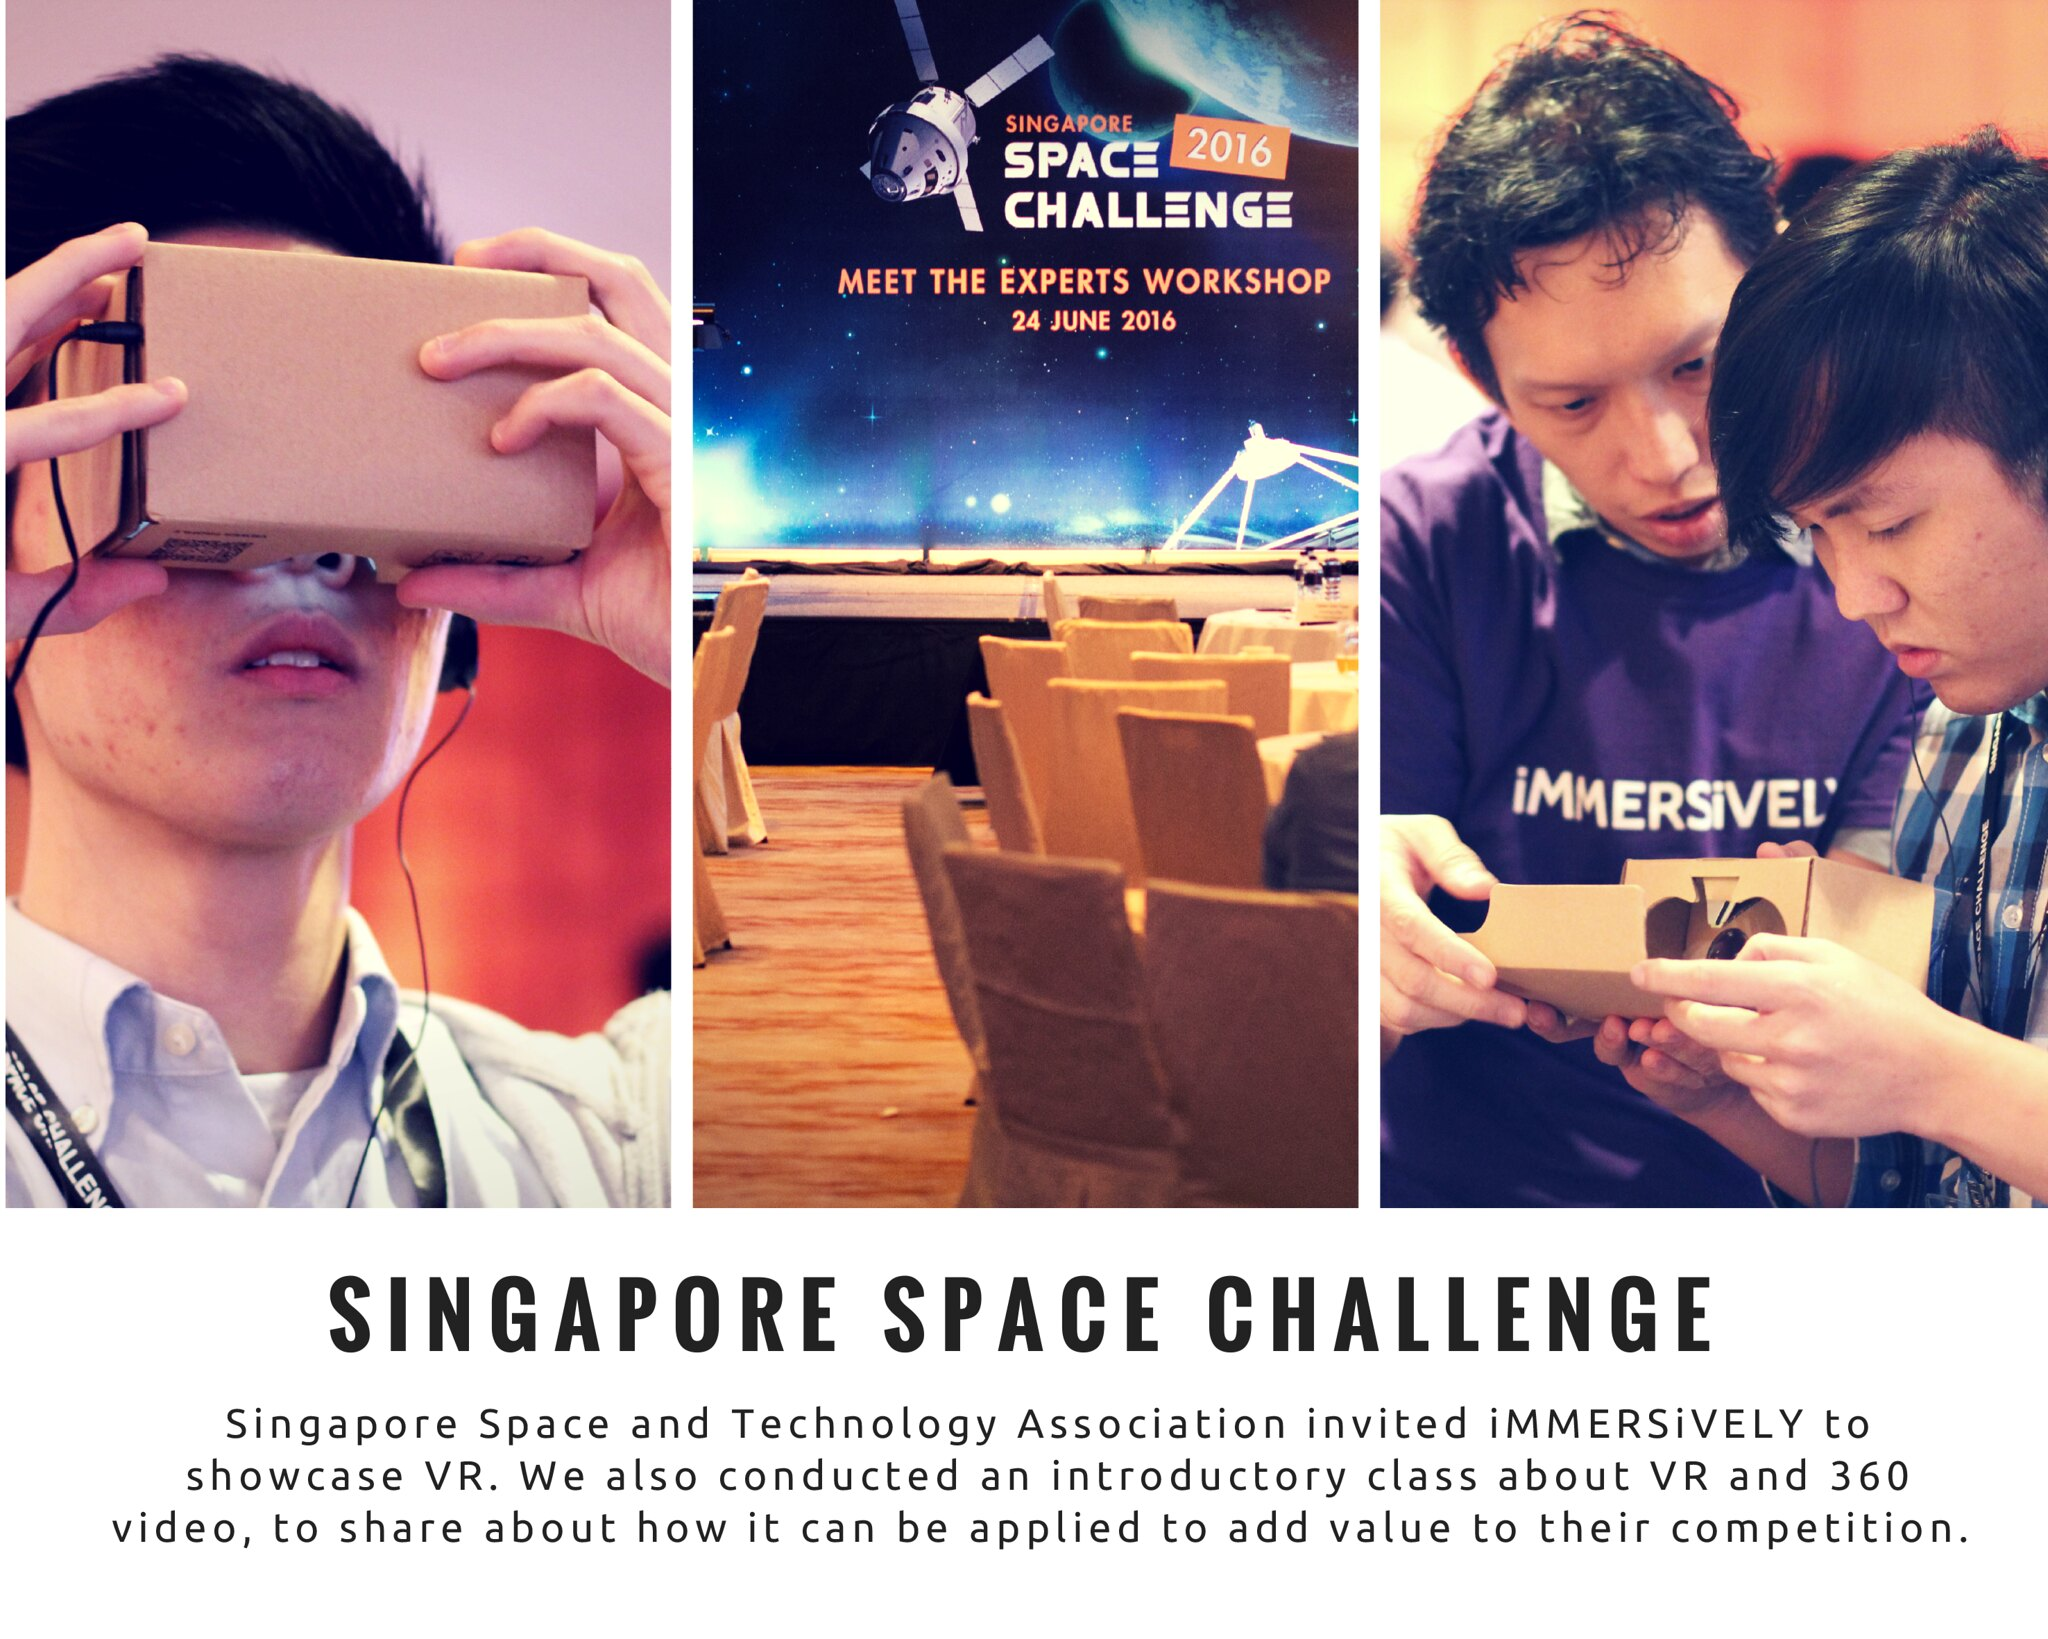 Singapore Space Challenge 2016